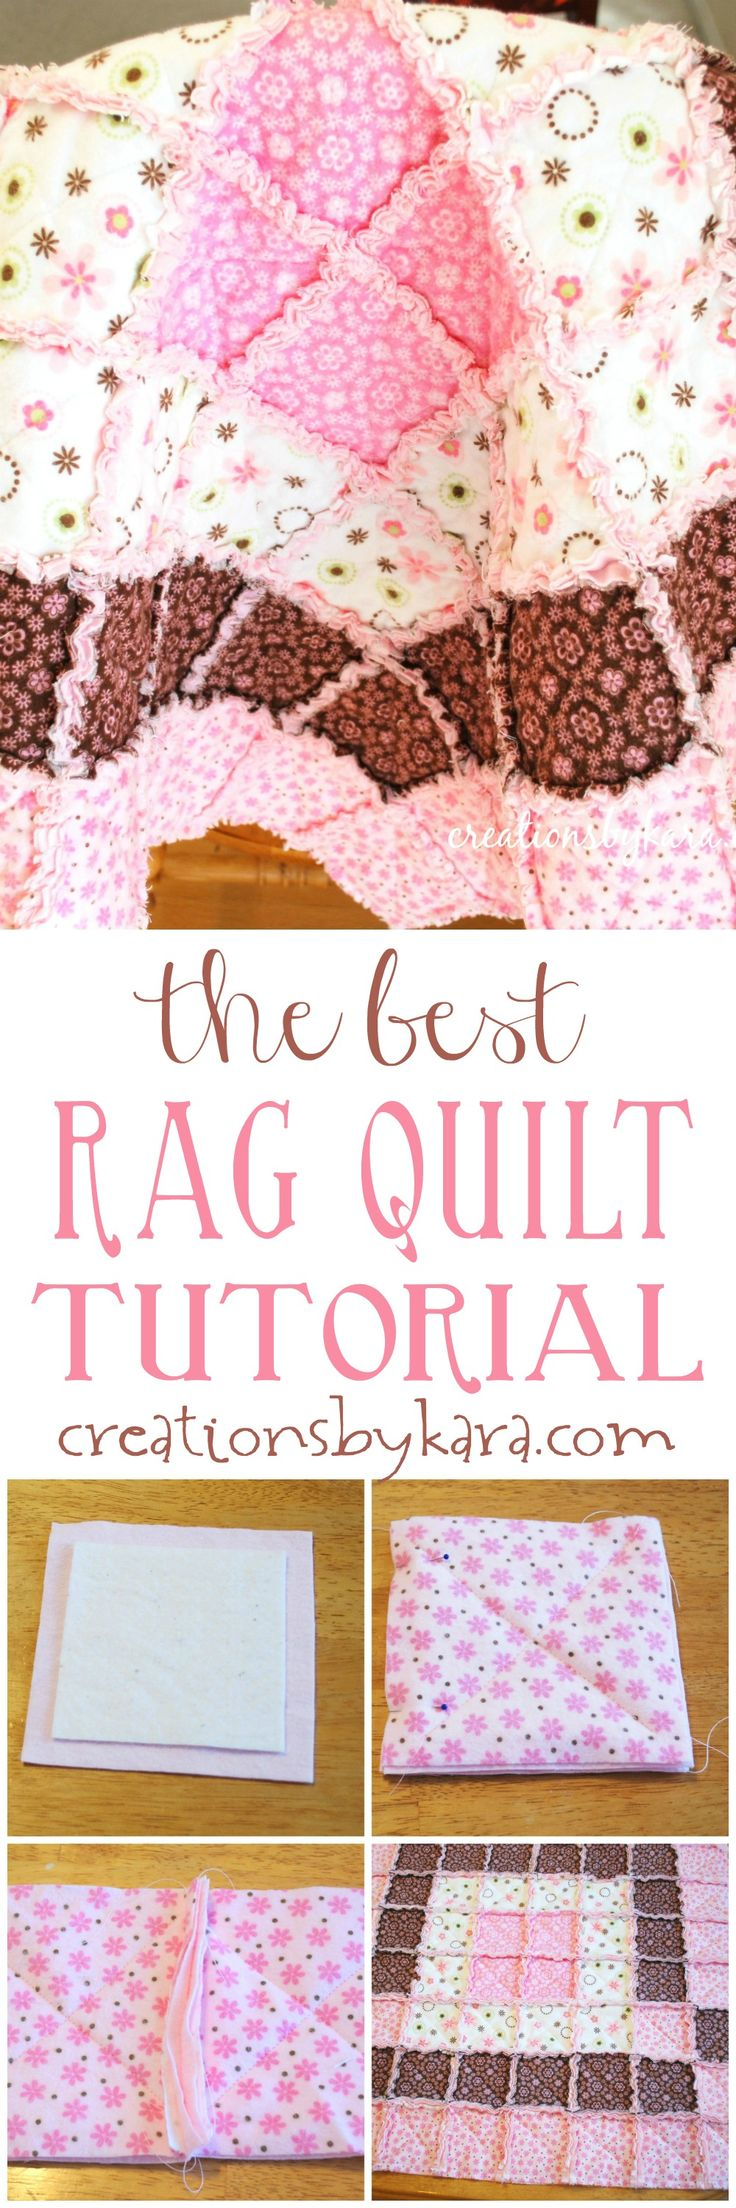 This is the best tutorial you will find for making a baby rag quilt. Even a beginner can make a beautiful rag quilt with these step by step instructions!